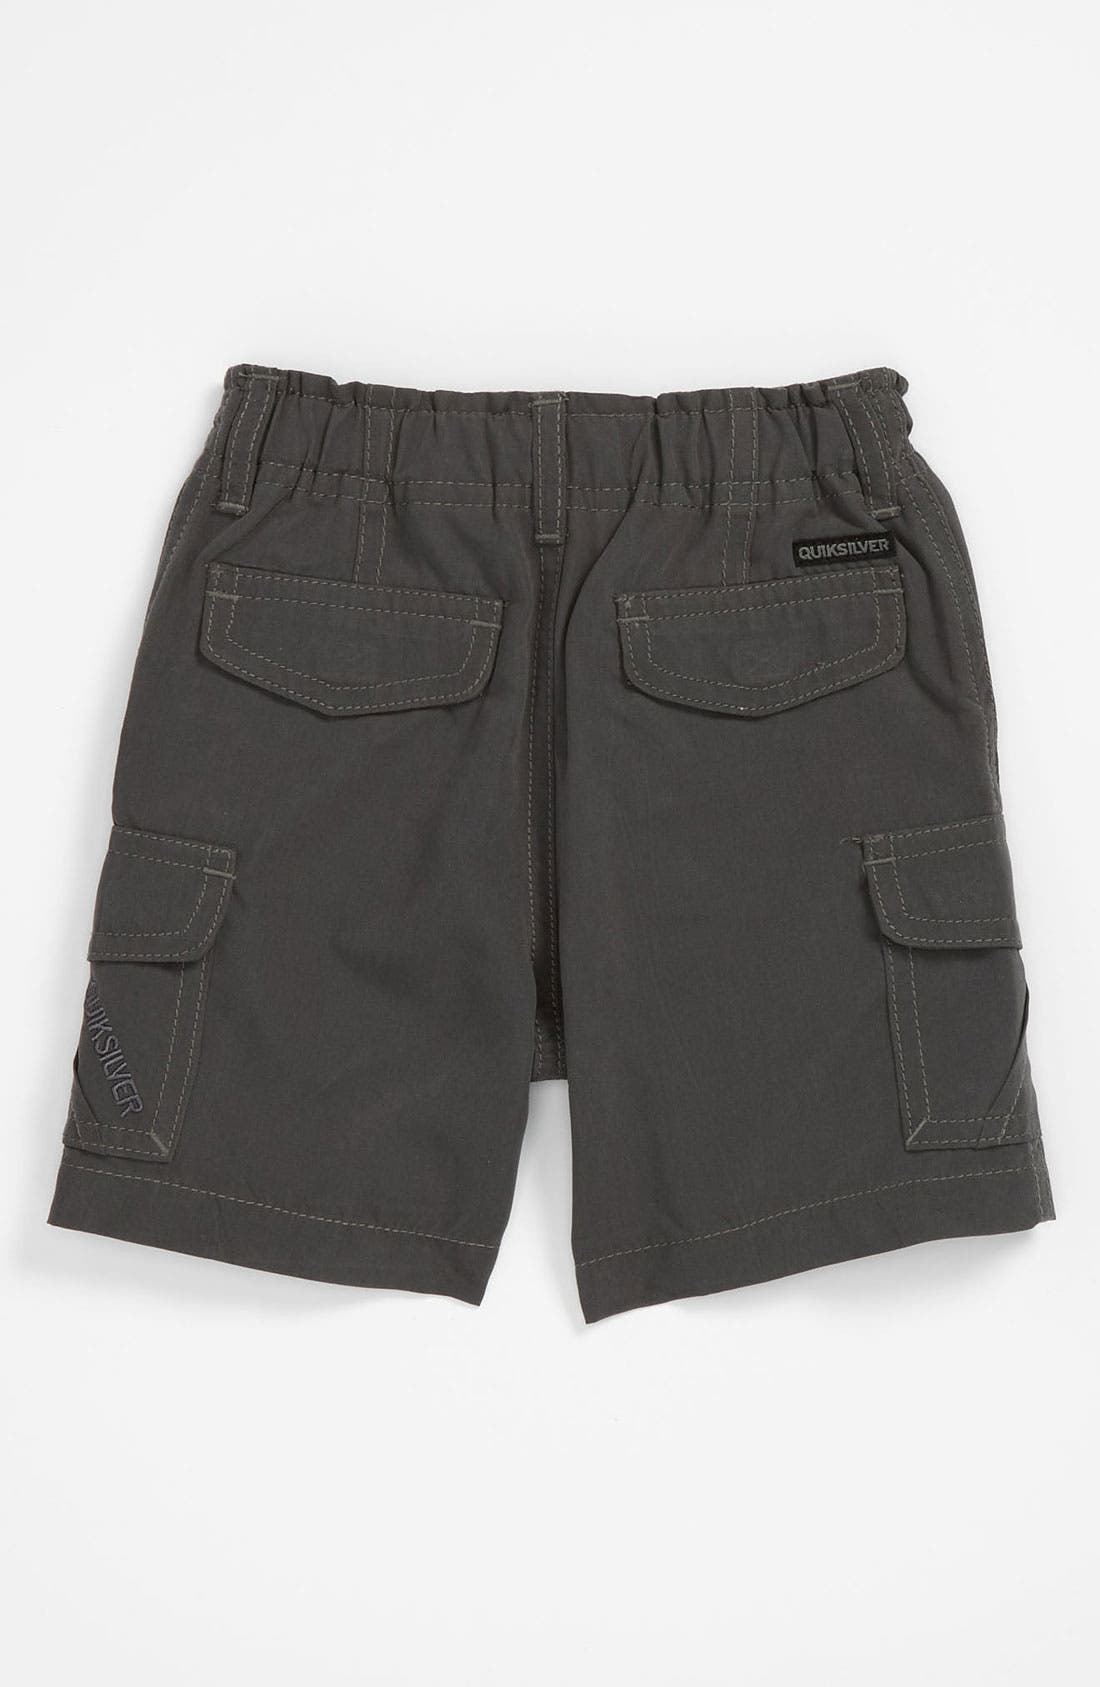 Alternate Image 2  - Quiksilver 'Phofilled' Shorts (Toddler)